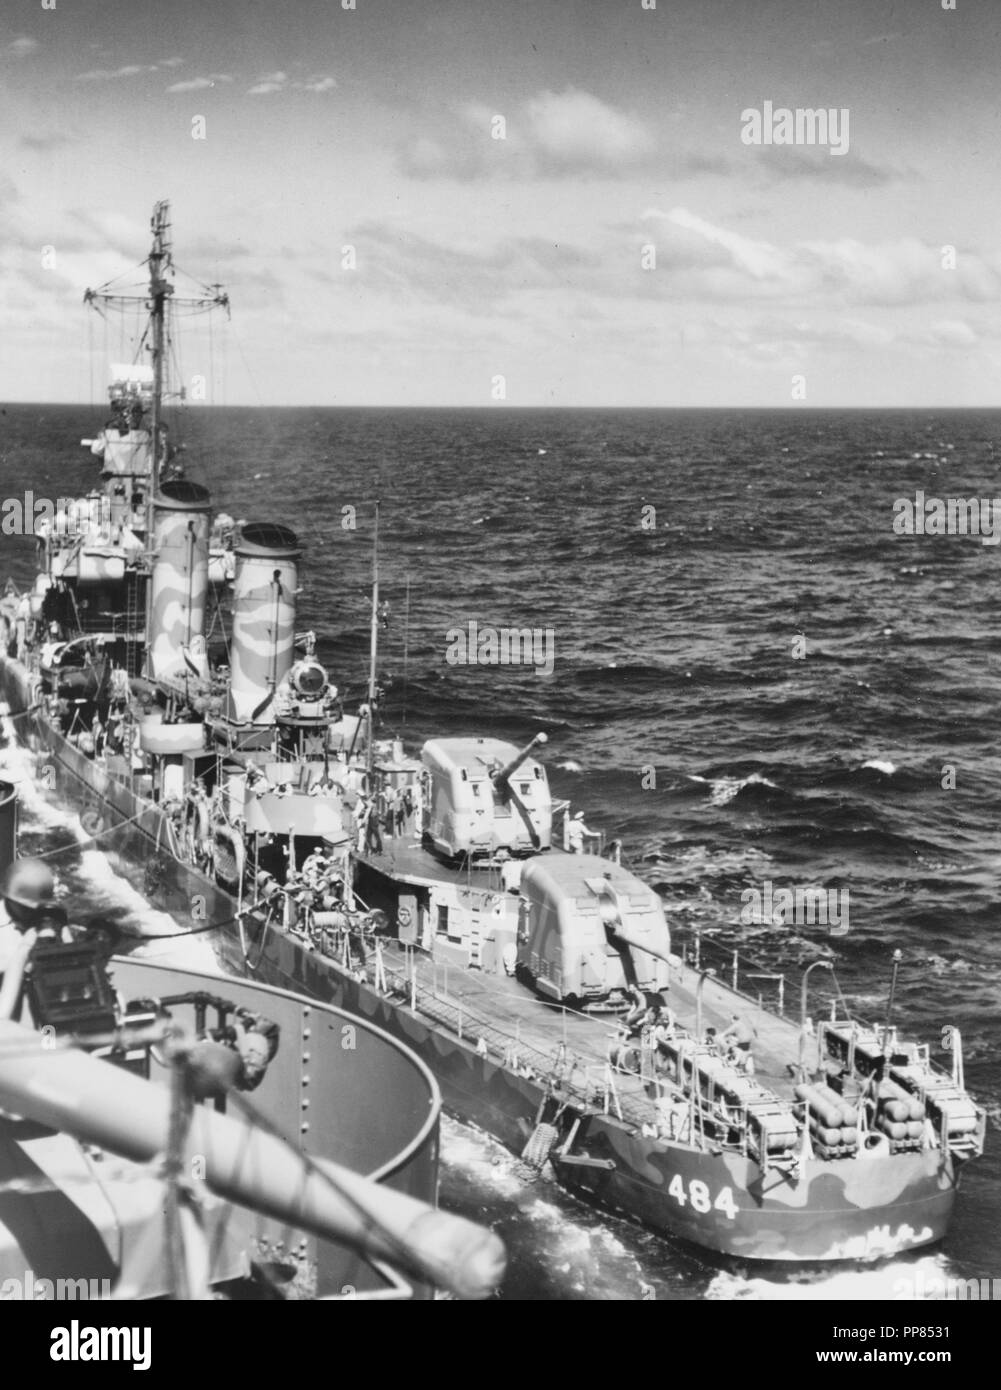 USS Buchanan (DD-484) Refueling from USS Wasp (CV-7) while en route to the Guadalcanal-Tulagi invasion area, 3 August 1942. Buchanan is painted in Camouflage Measure 12 (Modified). Note the depth charges in stern racks and on K-Guns, fenders rigged along her sides, and the red refueling flag flying from her foremast. Also note the 5/38 gun aboard Wasp, in the lower left. - Stock Image